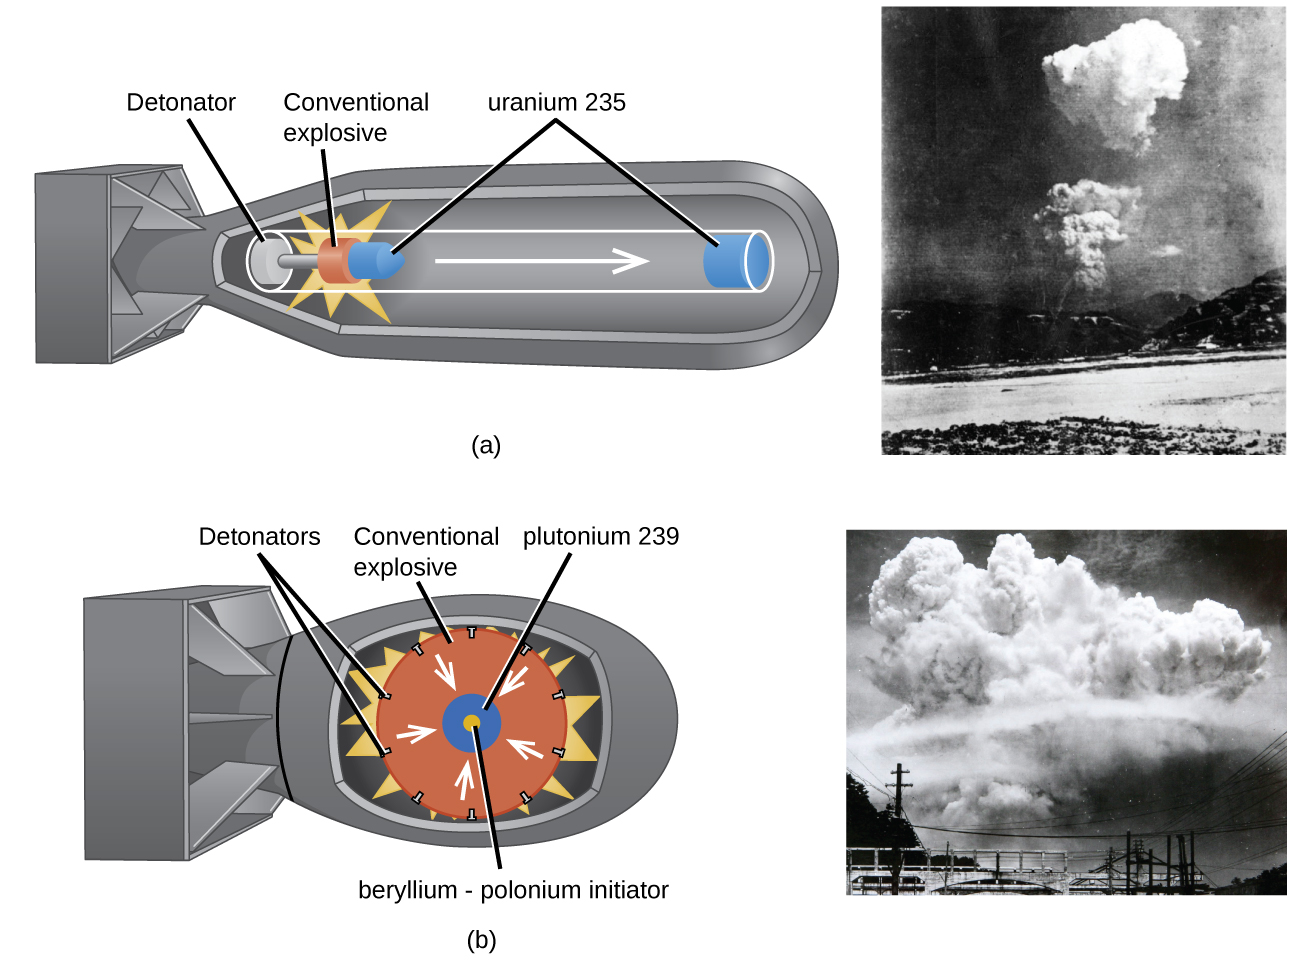 """Two diagrams are shown, each to the left of a photo, and labeled """"a"""" and """"b."""" Diagram a shows the outer casing of a bomb that has a long, tubular shape with a squared-off tail. Components in the shell show a tube with a white disk labeled """"Detonator"""" on the left, an orange disk with a bright yellow starburst drawn around it labeled """"Conventional explosive"""" in the middle and a right-facing arrow leading to a blue disk in the nose of the bomb labeled """"uranium 235."""" A small blue cone next to the orange disk is shares the label of """"uranium 235."""" A black and white photo next to this diagram shows a far-off shot of a rising cloud over a landscape. Diagram b shows the outer casing of a bomb that has a short, rounded shape with a squared-off tail. Components in the shell show a large orange circle labeled """"Conventional explosive"""" with a series of black dots around its edge, labeled """"Detonators,"""" and a yellow starburst behind it. White arrows face from the outer edge of the orange circle to a blue circle in the center with a yellow core. The blue circle is labeled """"plutonium 239"""" while the yellow core is labeled """"beryllium, dash, polonium initiator."""" A black and white photo next to this diagram shows a far-off shot of a giant rising cloud over a landscape."""